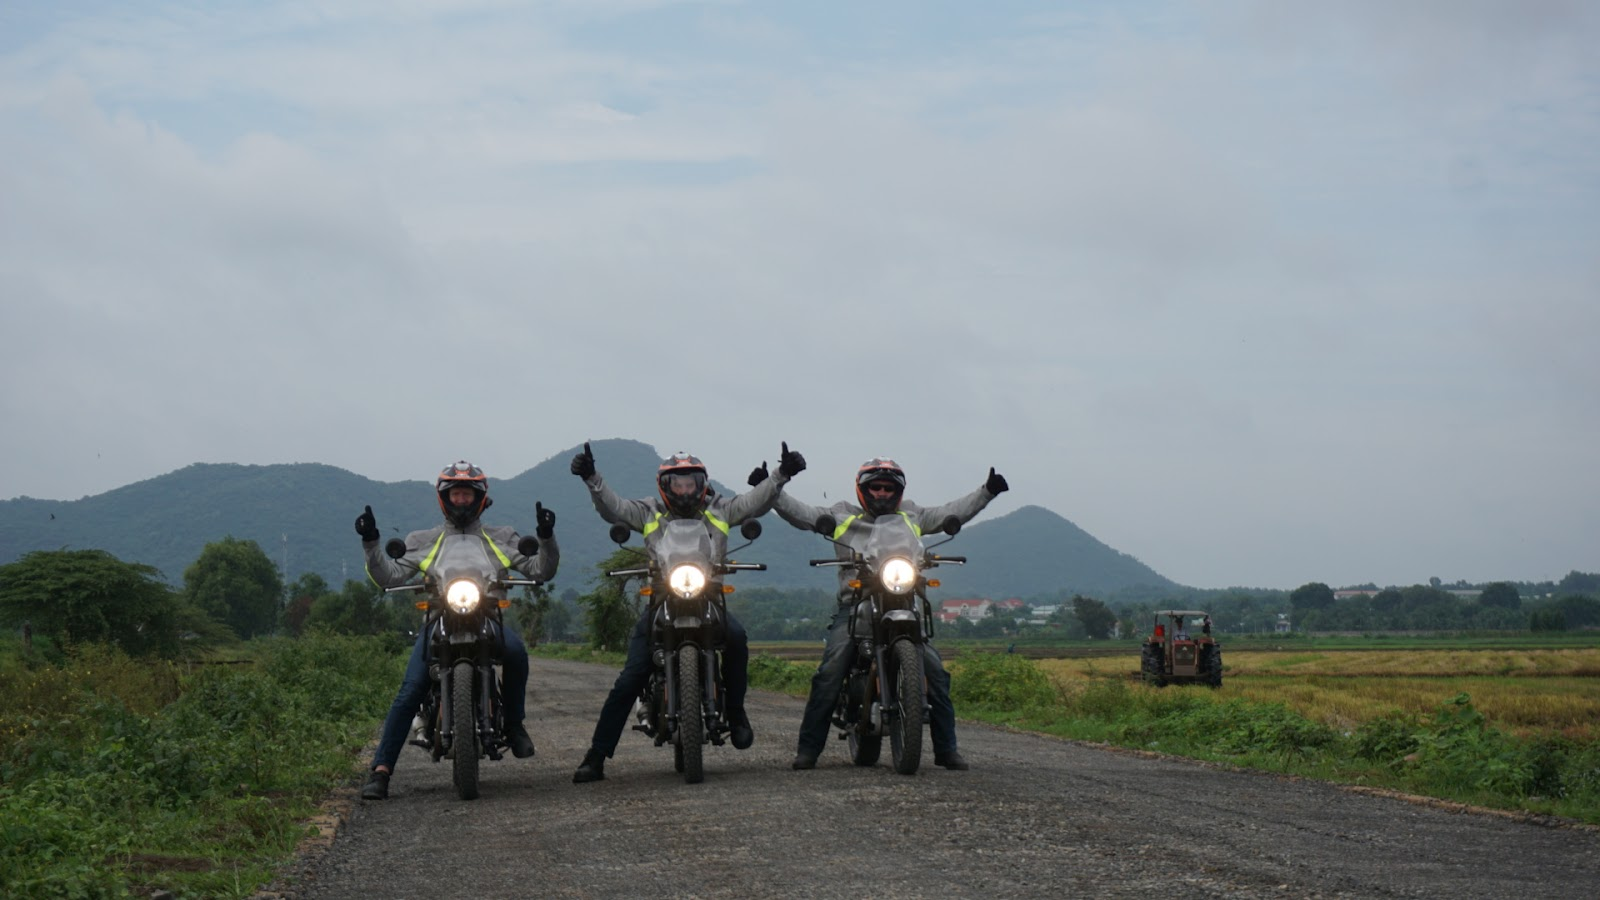 Riding from Vung Tau to Phan Thiet